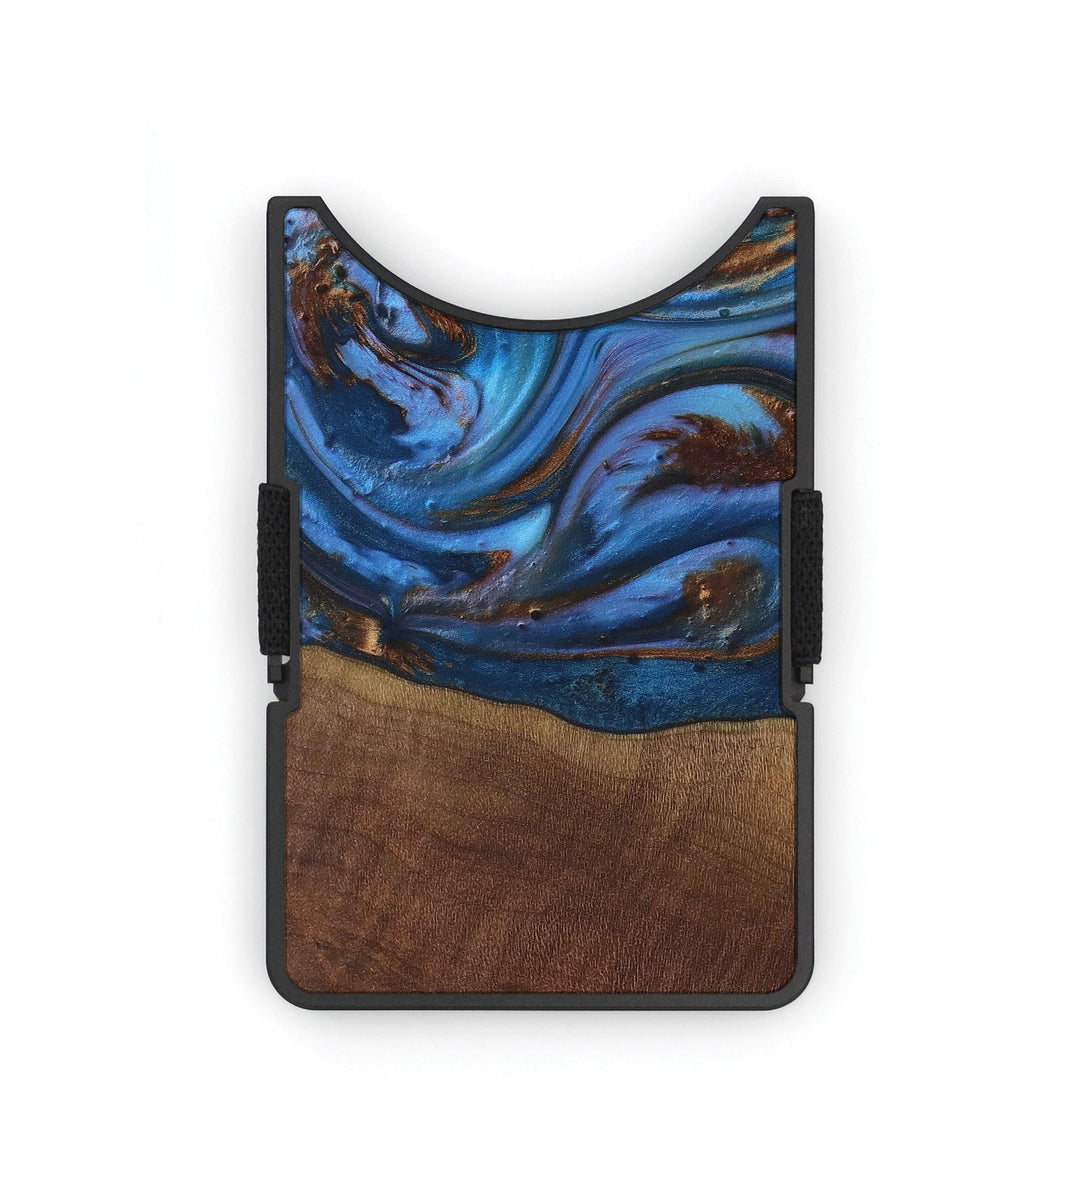 Alloy Wood+Resin Wallet - Melodie (Teal & Gold, 427483)